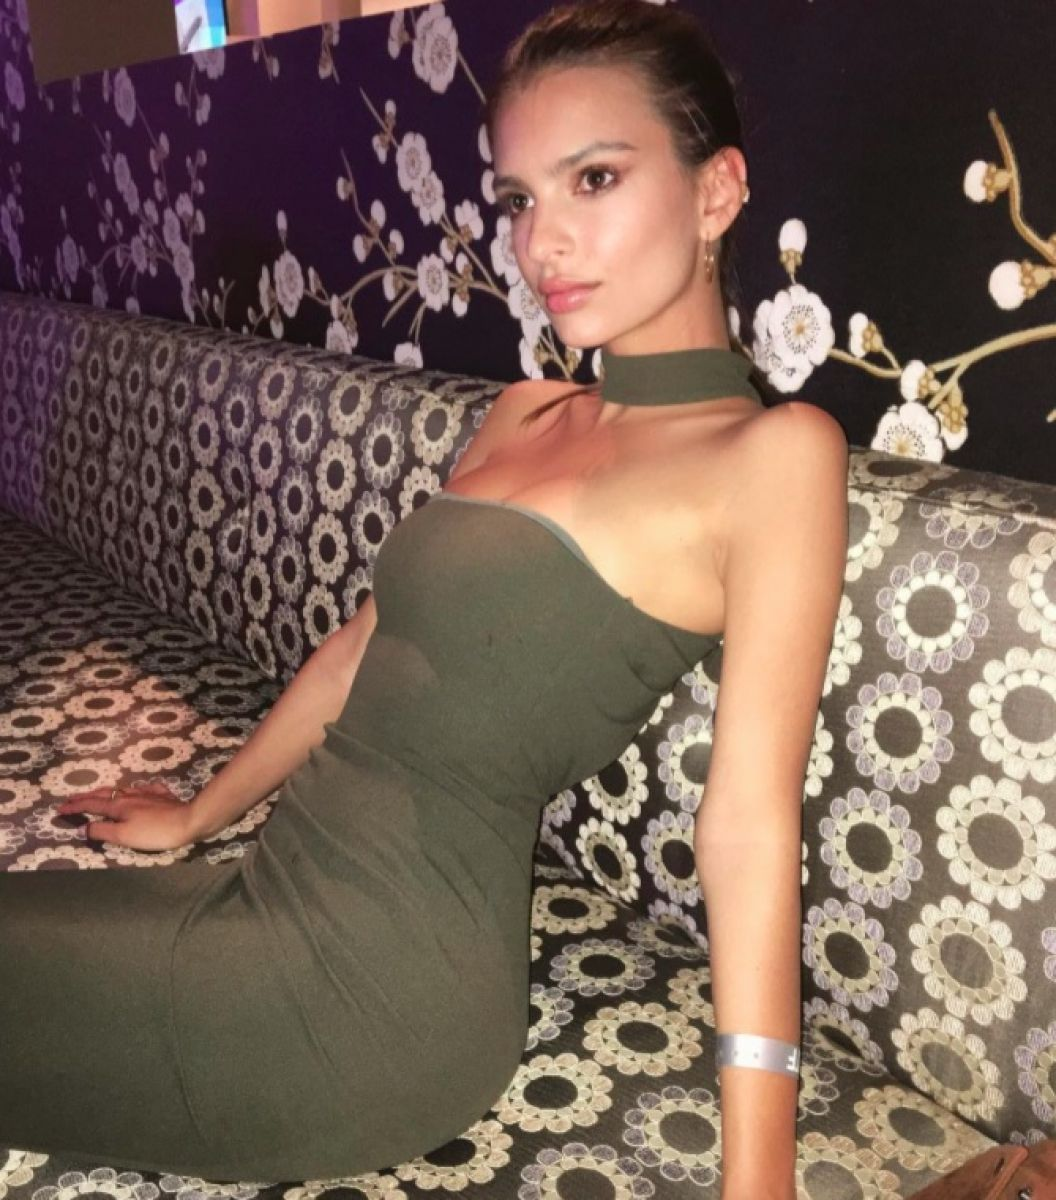 You won't believe where Emily Ratajkowski got her outfit from! Get all the details via @swavyapp